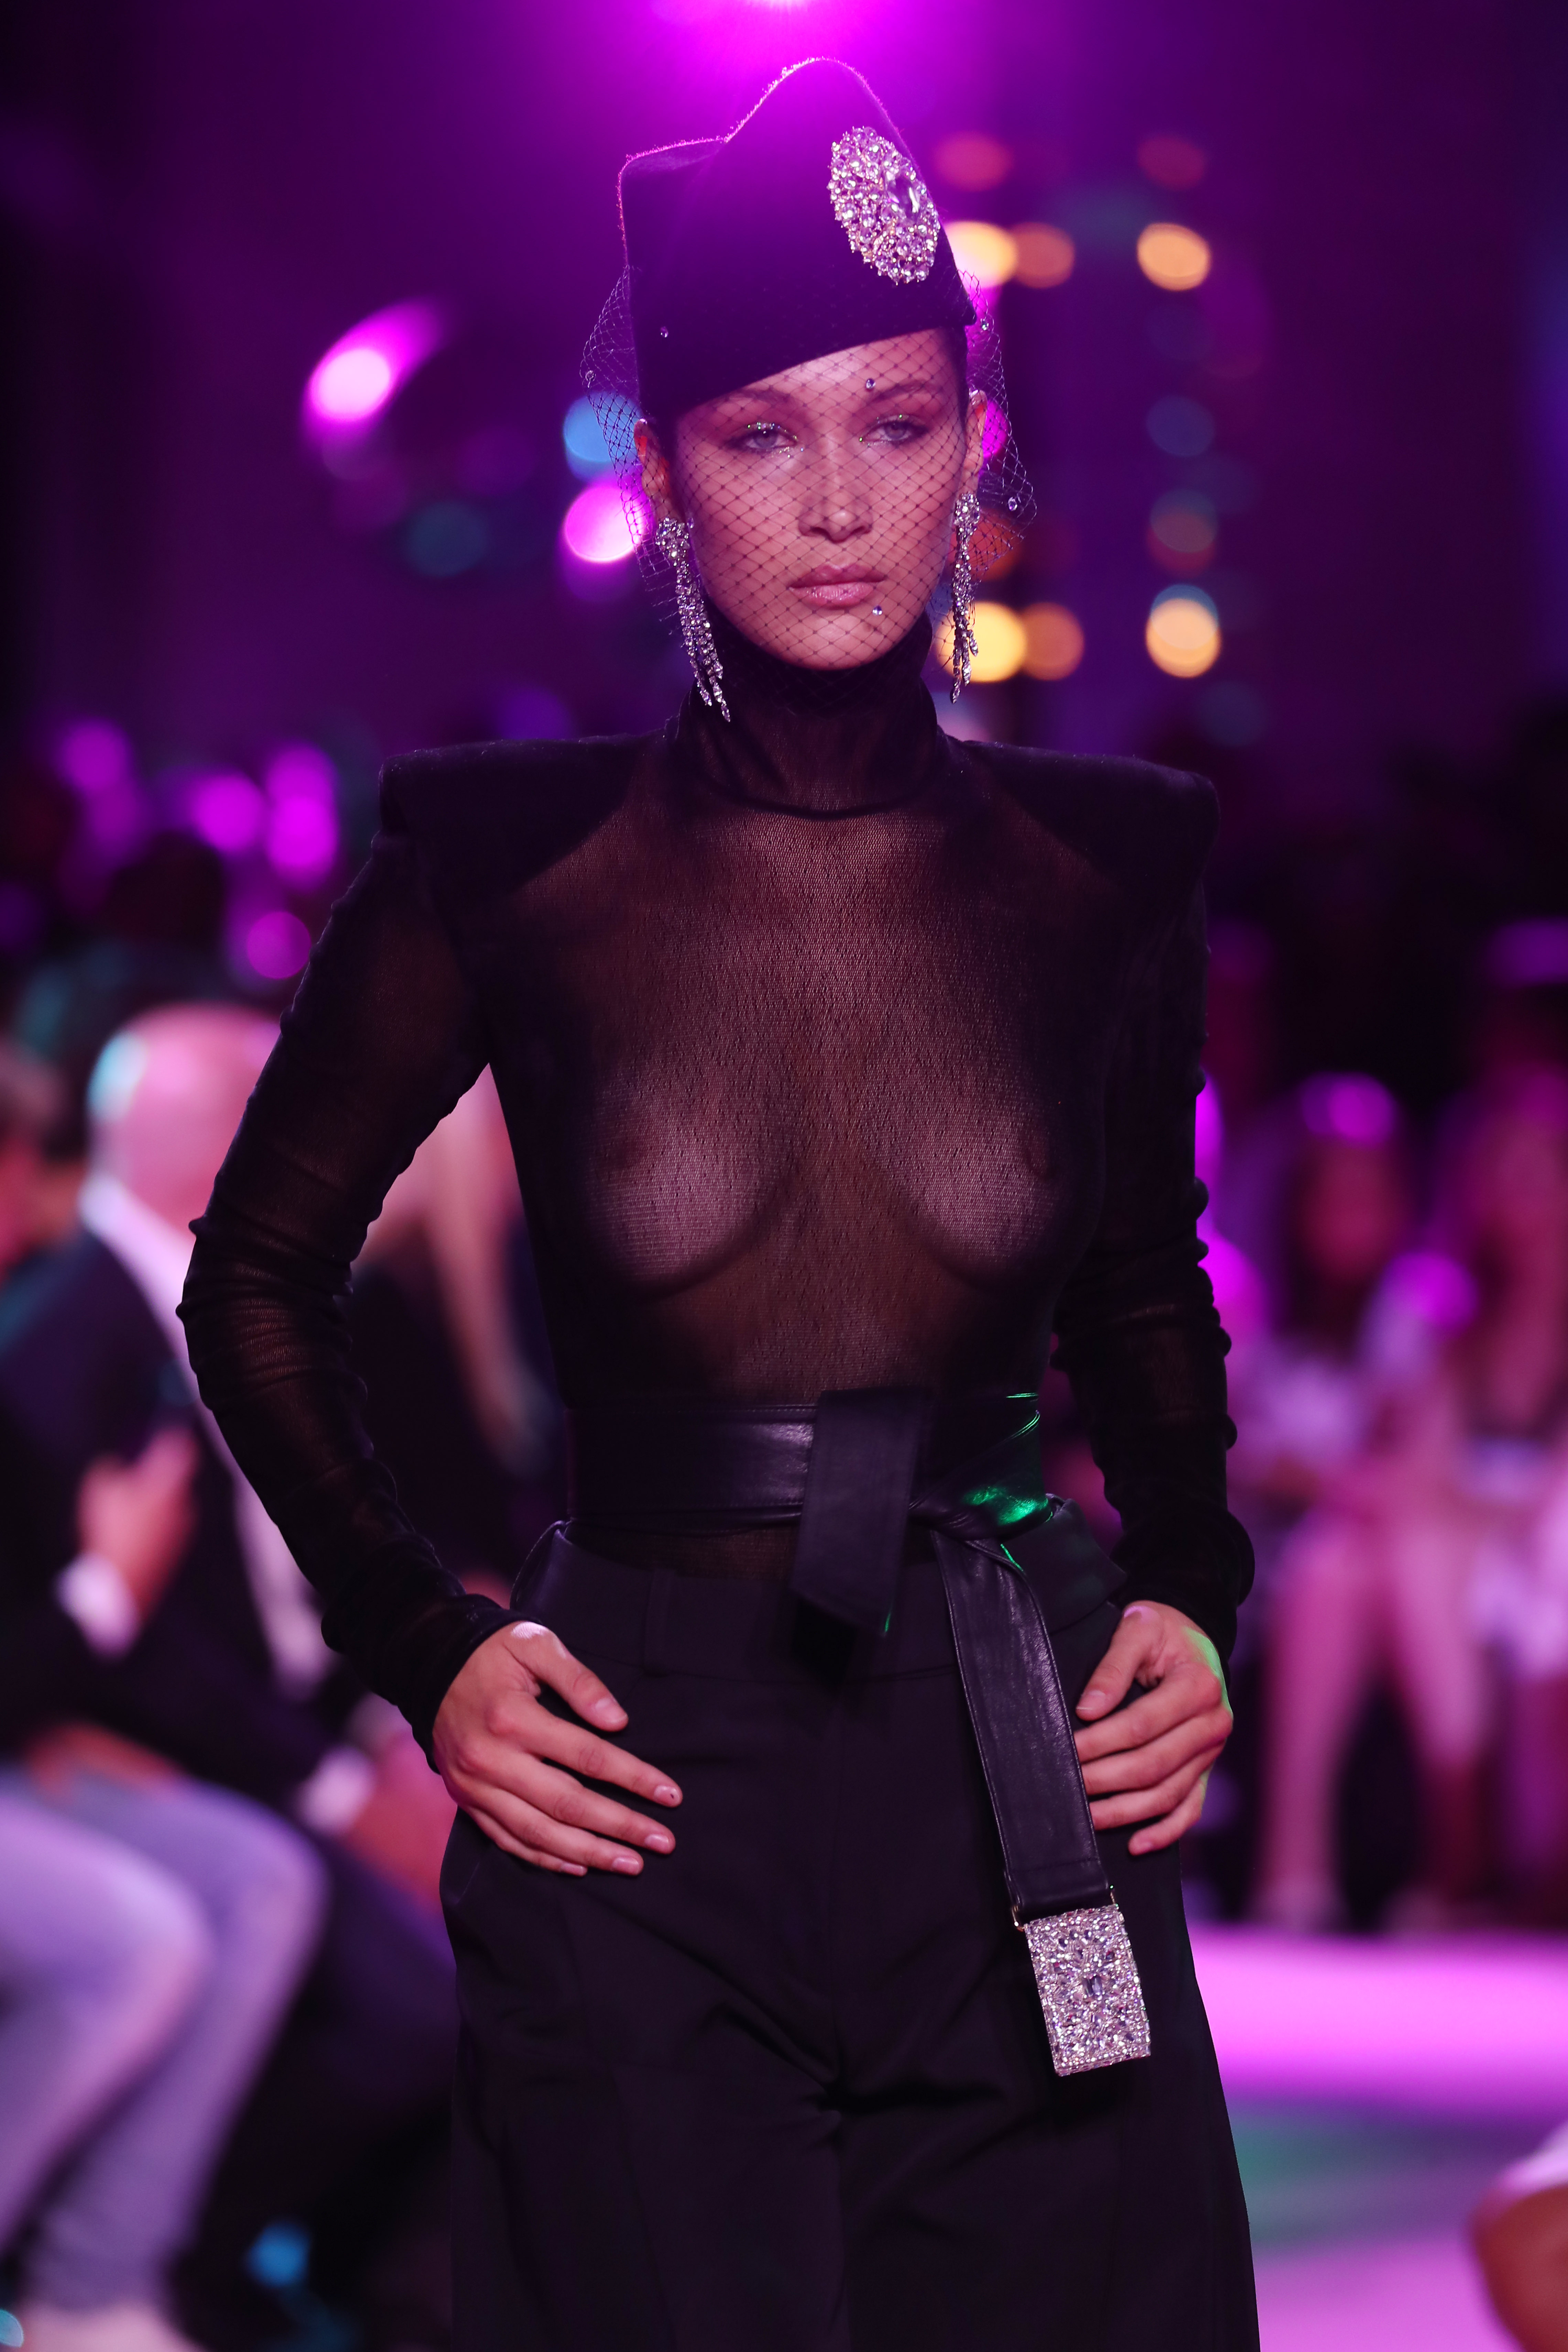 """<p>The rarefied world of haute couture was shaken up in Paris on Tuesday by Alexandre Vauthier's glistening tribute to Studio 54 with <a href=""""http://style.nine.com.au/bella-hadid"""" target=""""_blank"""" draggable=""""false"""">Bella Hadid</a> committing to the freewheeling spirit.</p> <p>The French designer who honed his theatrical spirit working with Jean Paul Gaultier persuaded the body positive 20-year-old to wear a black sheer top down the runway. Bella also wore a silver evening gown with a plunging neckline and power shoulders in the upbeat tribute to disco decadence.</p> <p>""""My mum is very European, so our whole life we were very open about that stuff. It was just more casual."""" Bella Hadid told <em><a href=""""https://www.net-a-porter.com/magazine/408/contents"""" target=""""_blank"""" draggable=""""false"""">Porter</a></em><a href=""""https://www.net-a-porter.com/magazine/408/contents"""" target=""""_blank"""" draggable=""""false""""> magazine</a> about her casual approach to baring all.</p> <p>Strobe lighting, disco balls and dry ice transformed the Grand Palais into a nightclub for the show.<br /> """"Sometimes couture can be super serious but I think it can still be fun,"""" Alexandre said. """"You can have the most expensive clothes in the world but it's a question of attitude. Enjoy beautiful things but don't be obsessed.""""</p>"""